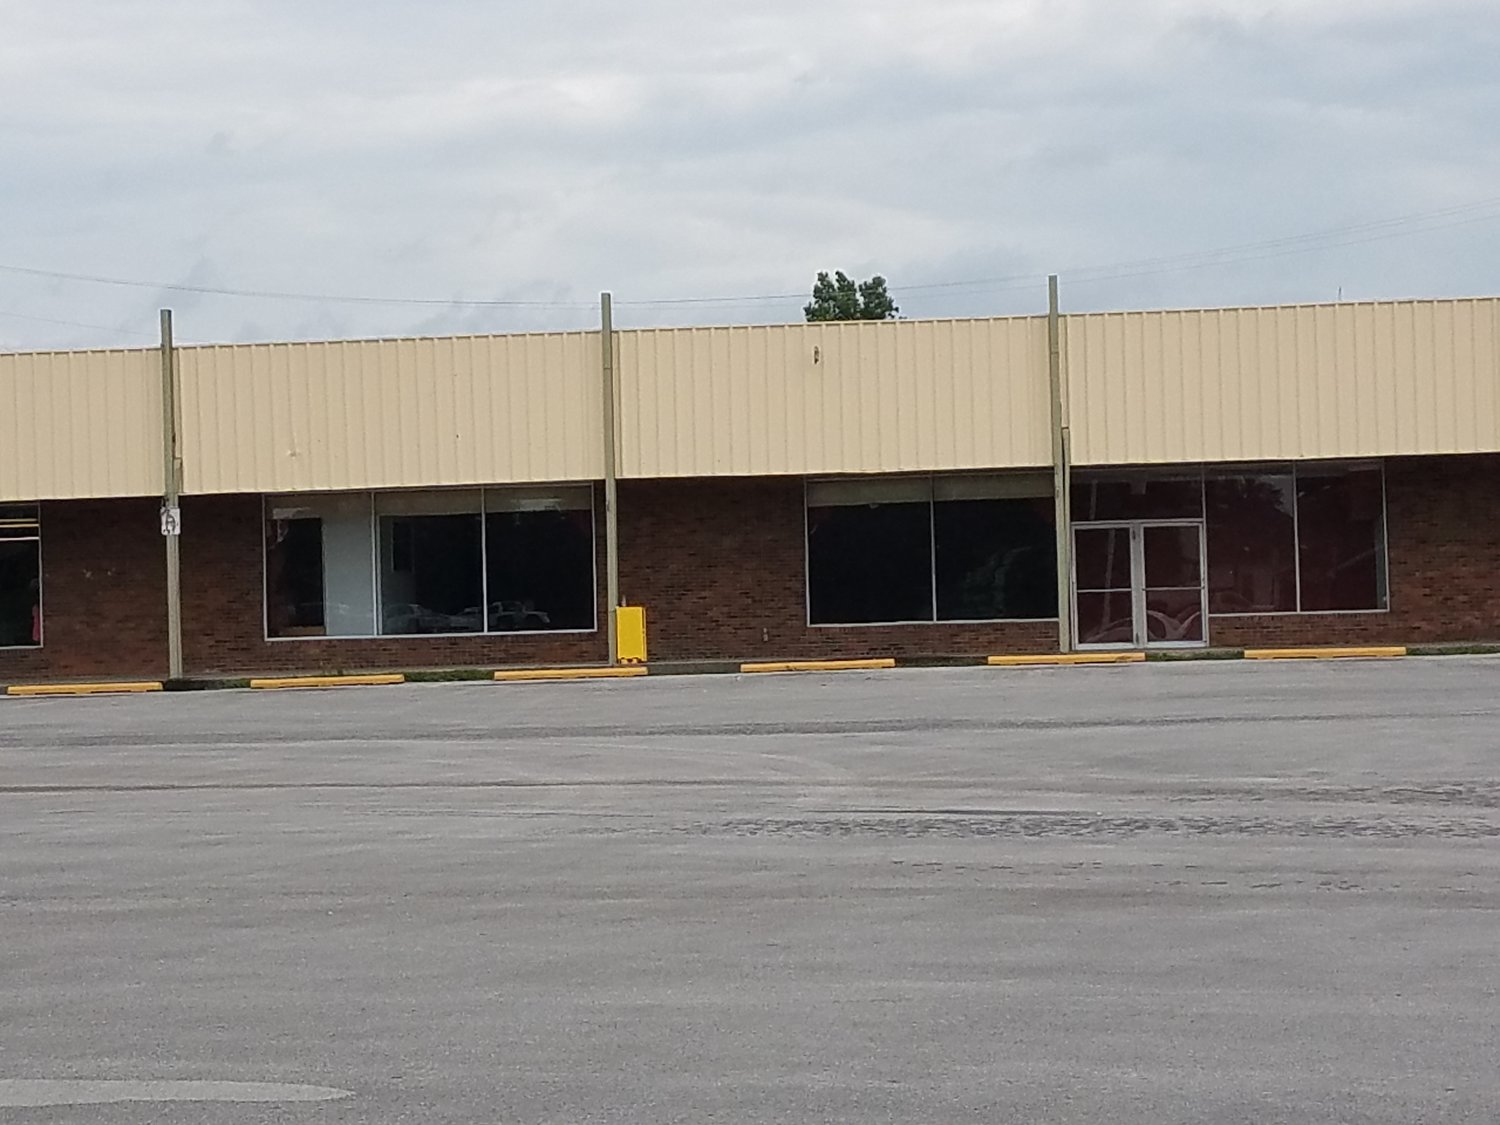 Main Photo For Commercial Storefront for Lease in Beaver Dam